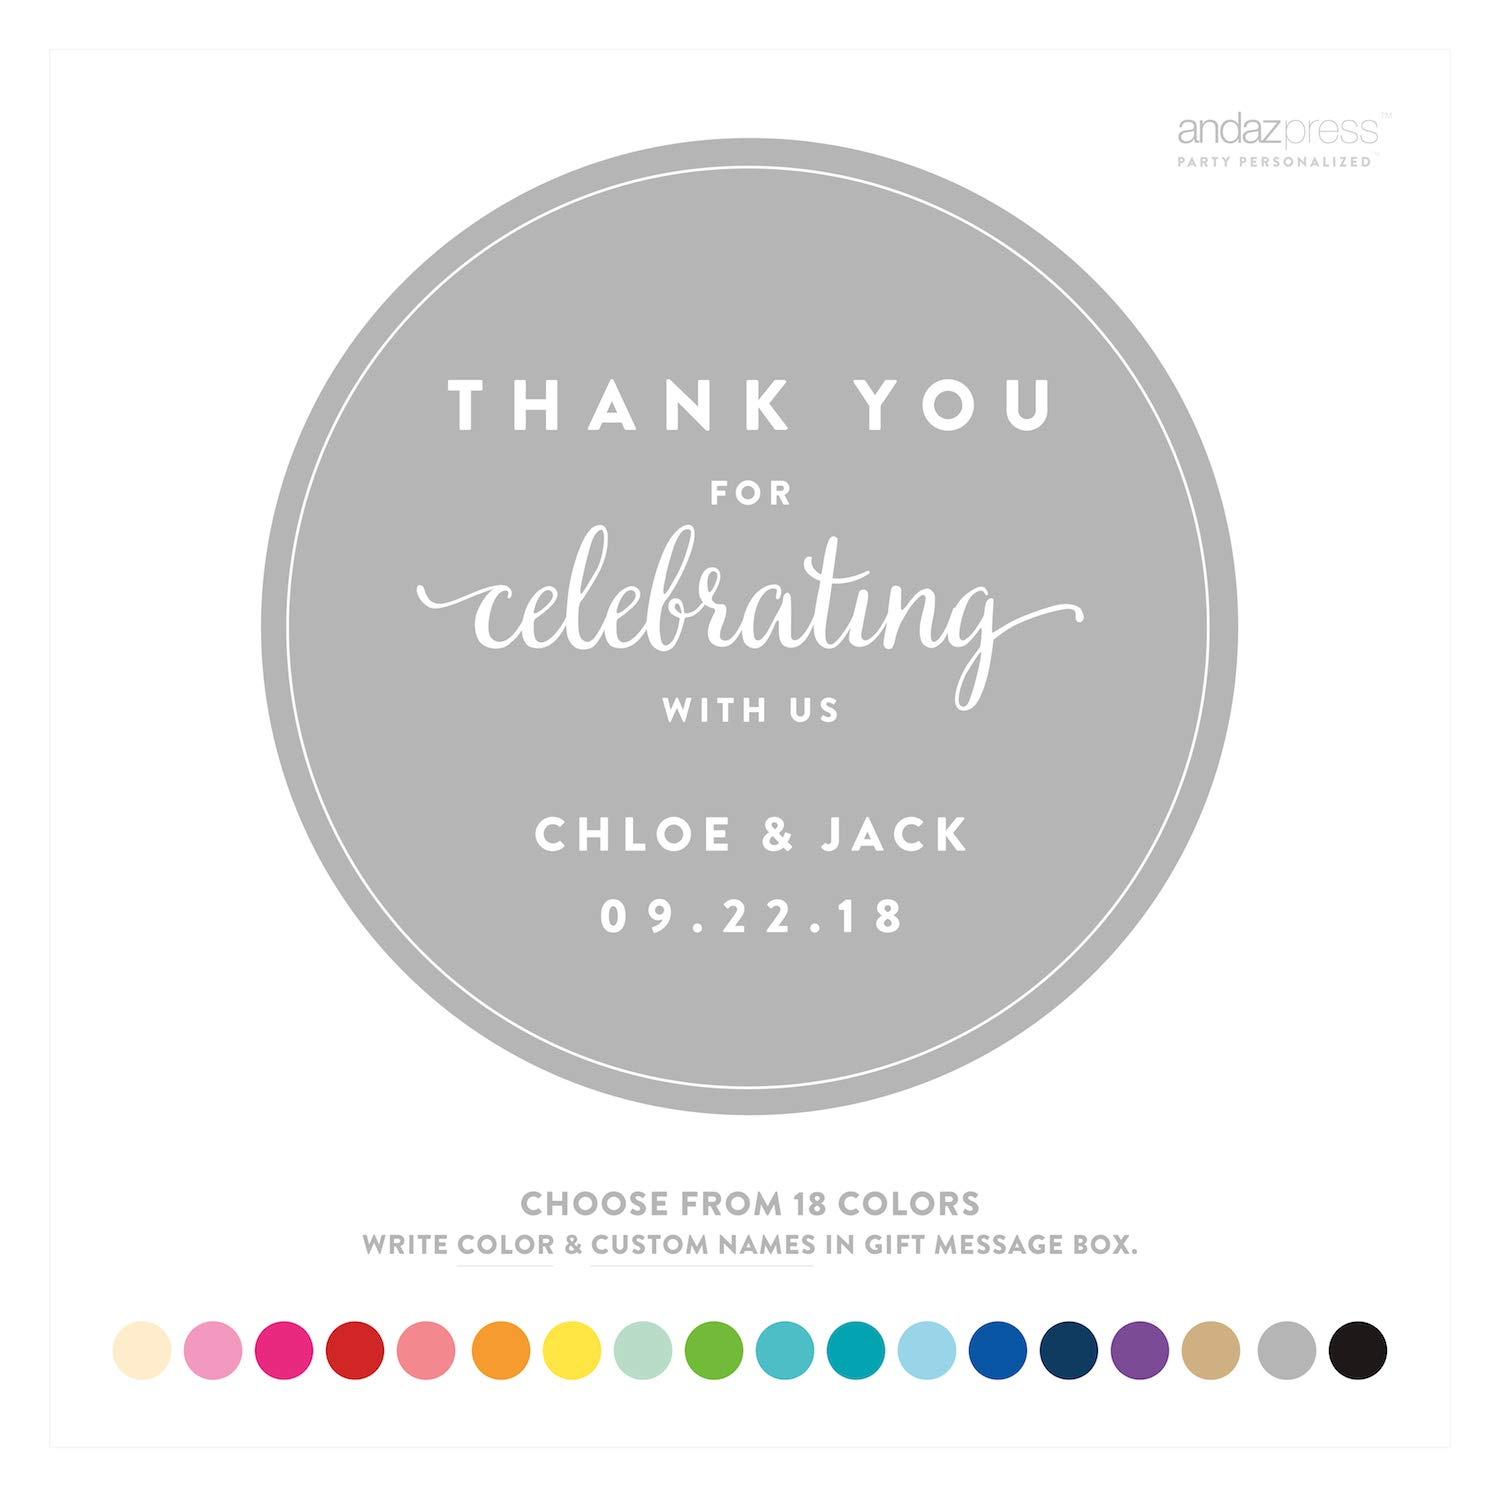 Andaz press personalized circle labels stickers wedding thank you for celebrating with us 40 pack